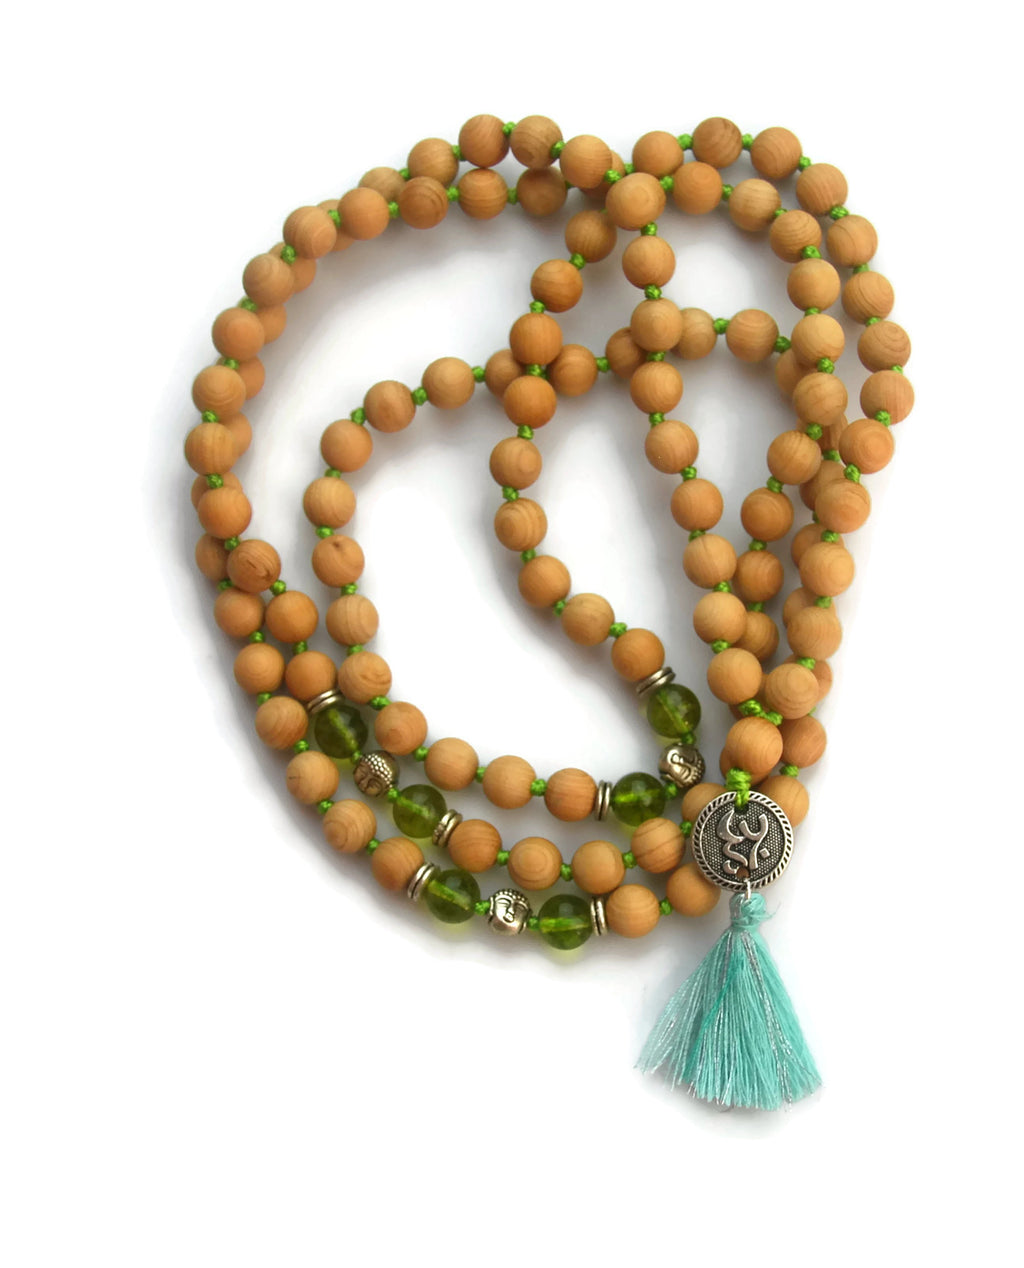 Om Line 8mm Cypress Wood & Peridot Crystal Traditional Knotted 108 Meditation Mala Necklace with Om Charm Pendant Heart Chakra